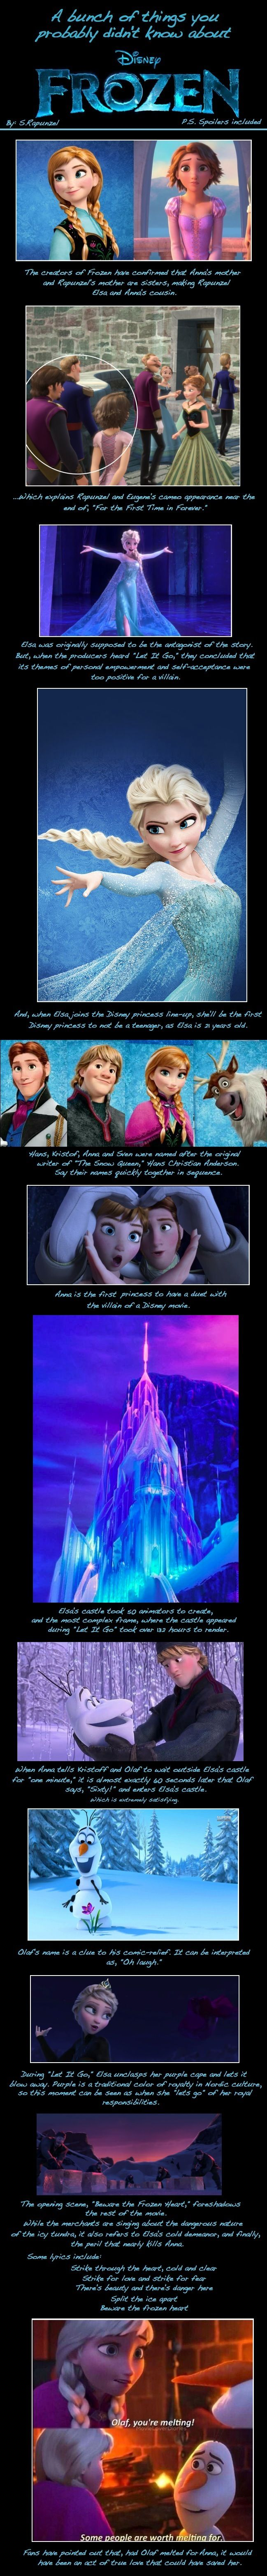 A bunch of stuff you probably didn't know about Frozen (oceanskysforever)